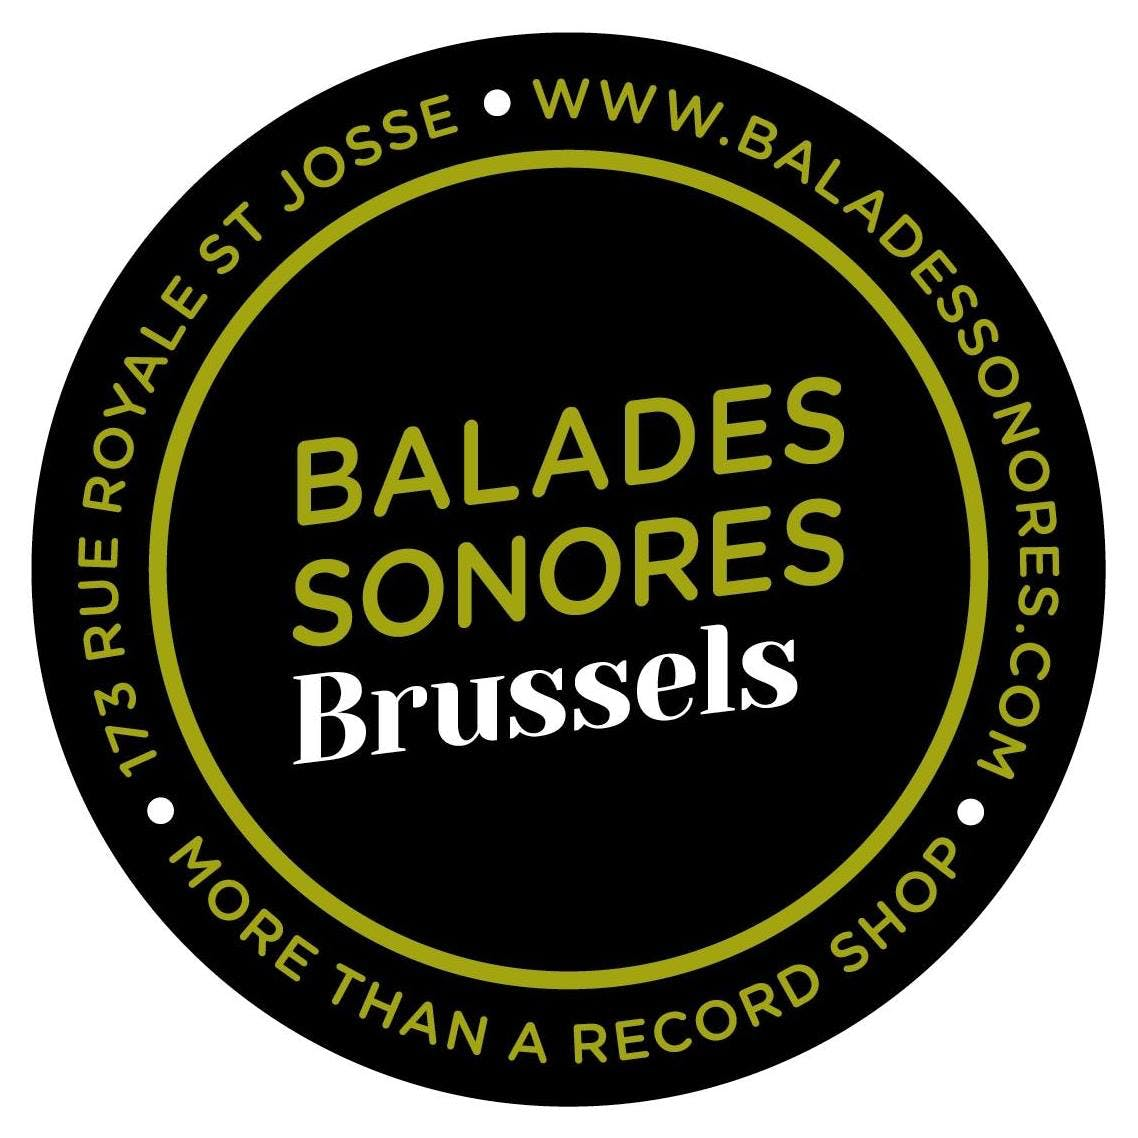 Balades Sonores Brussels - Record Store Image